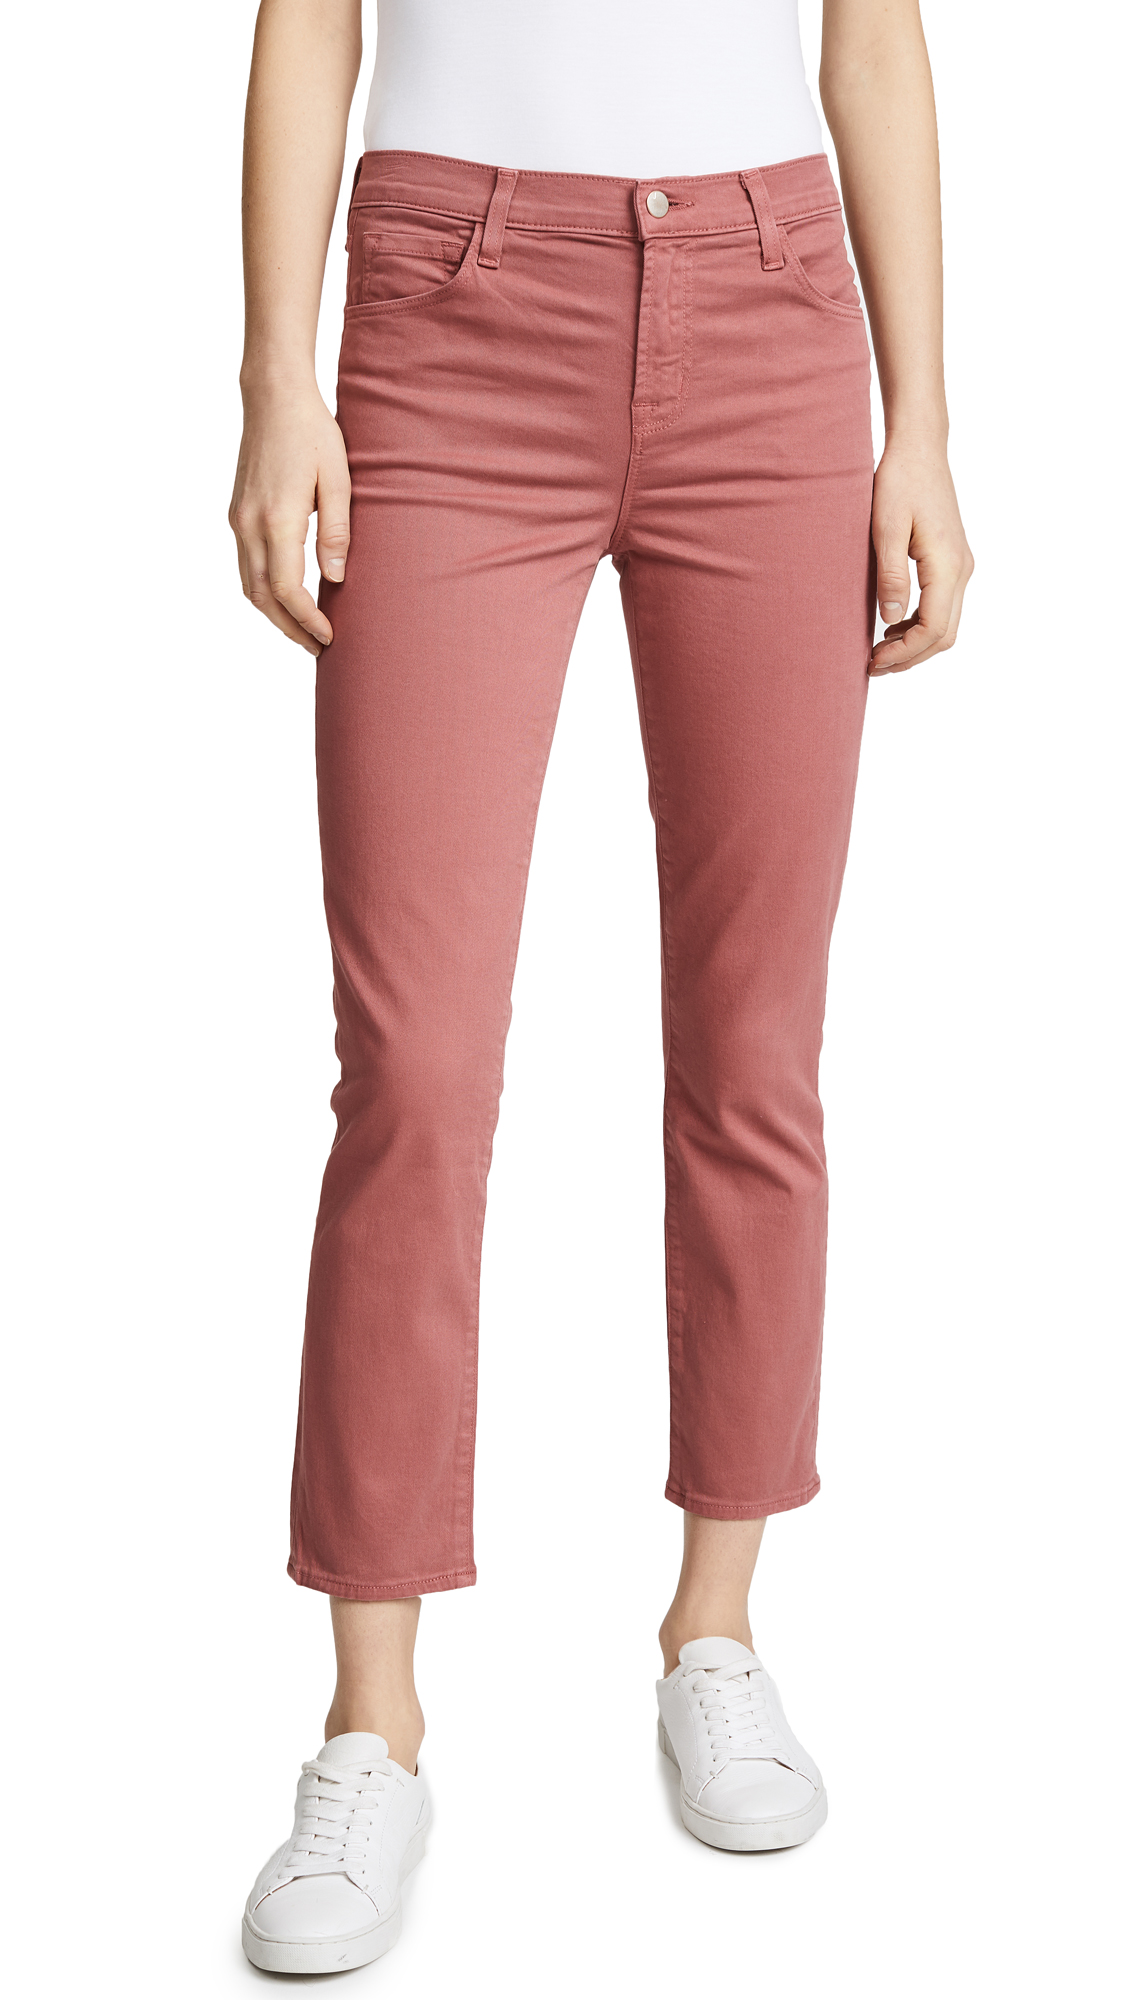 J Brand J Brand Ruby High Rise Crop Jeans Shoppingscanner